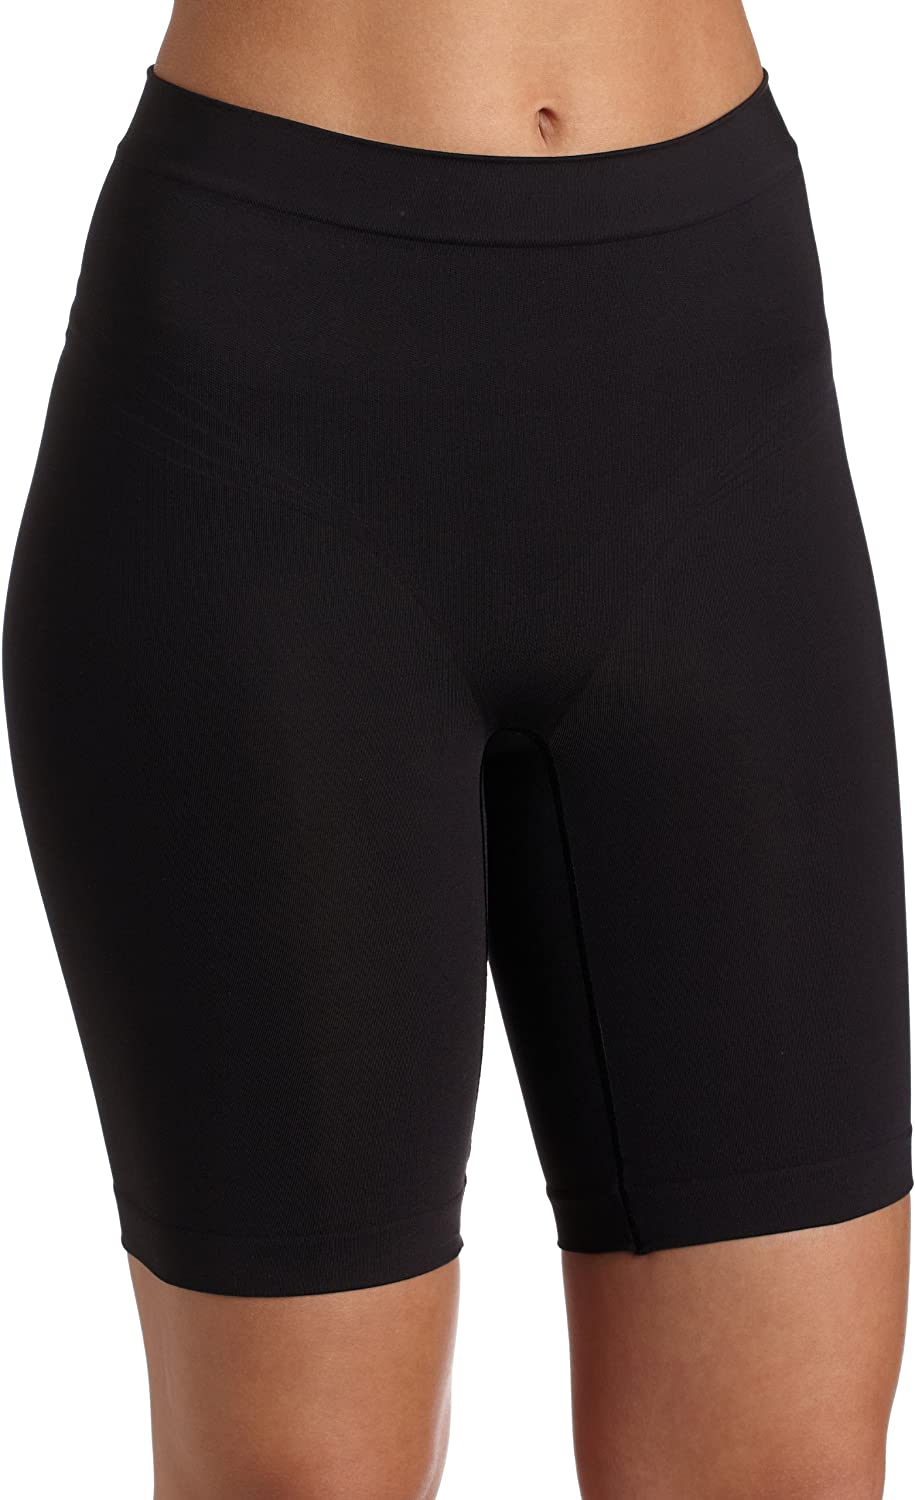 Maidenform Women's Control It  Thigh Slimmer  12415